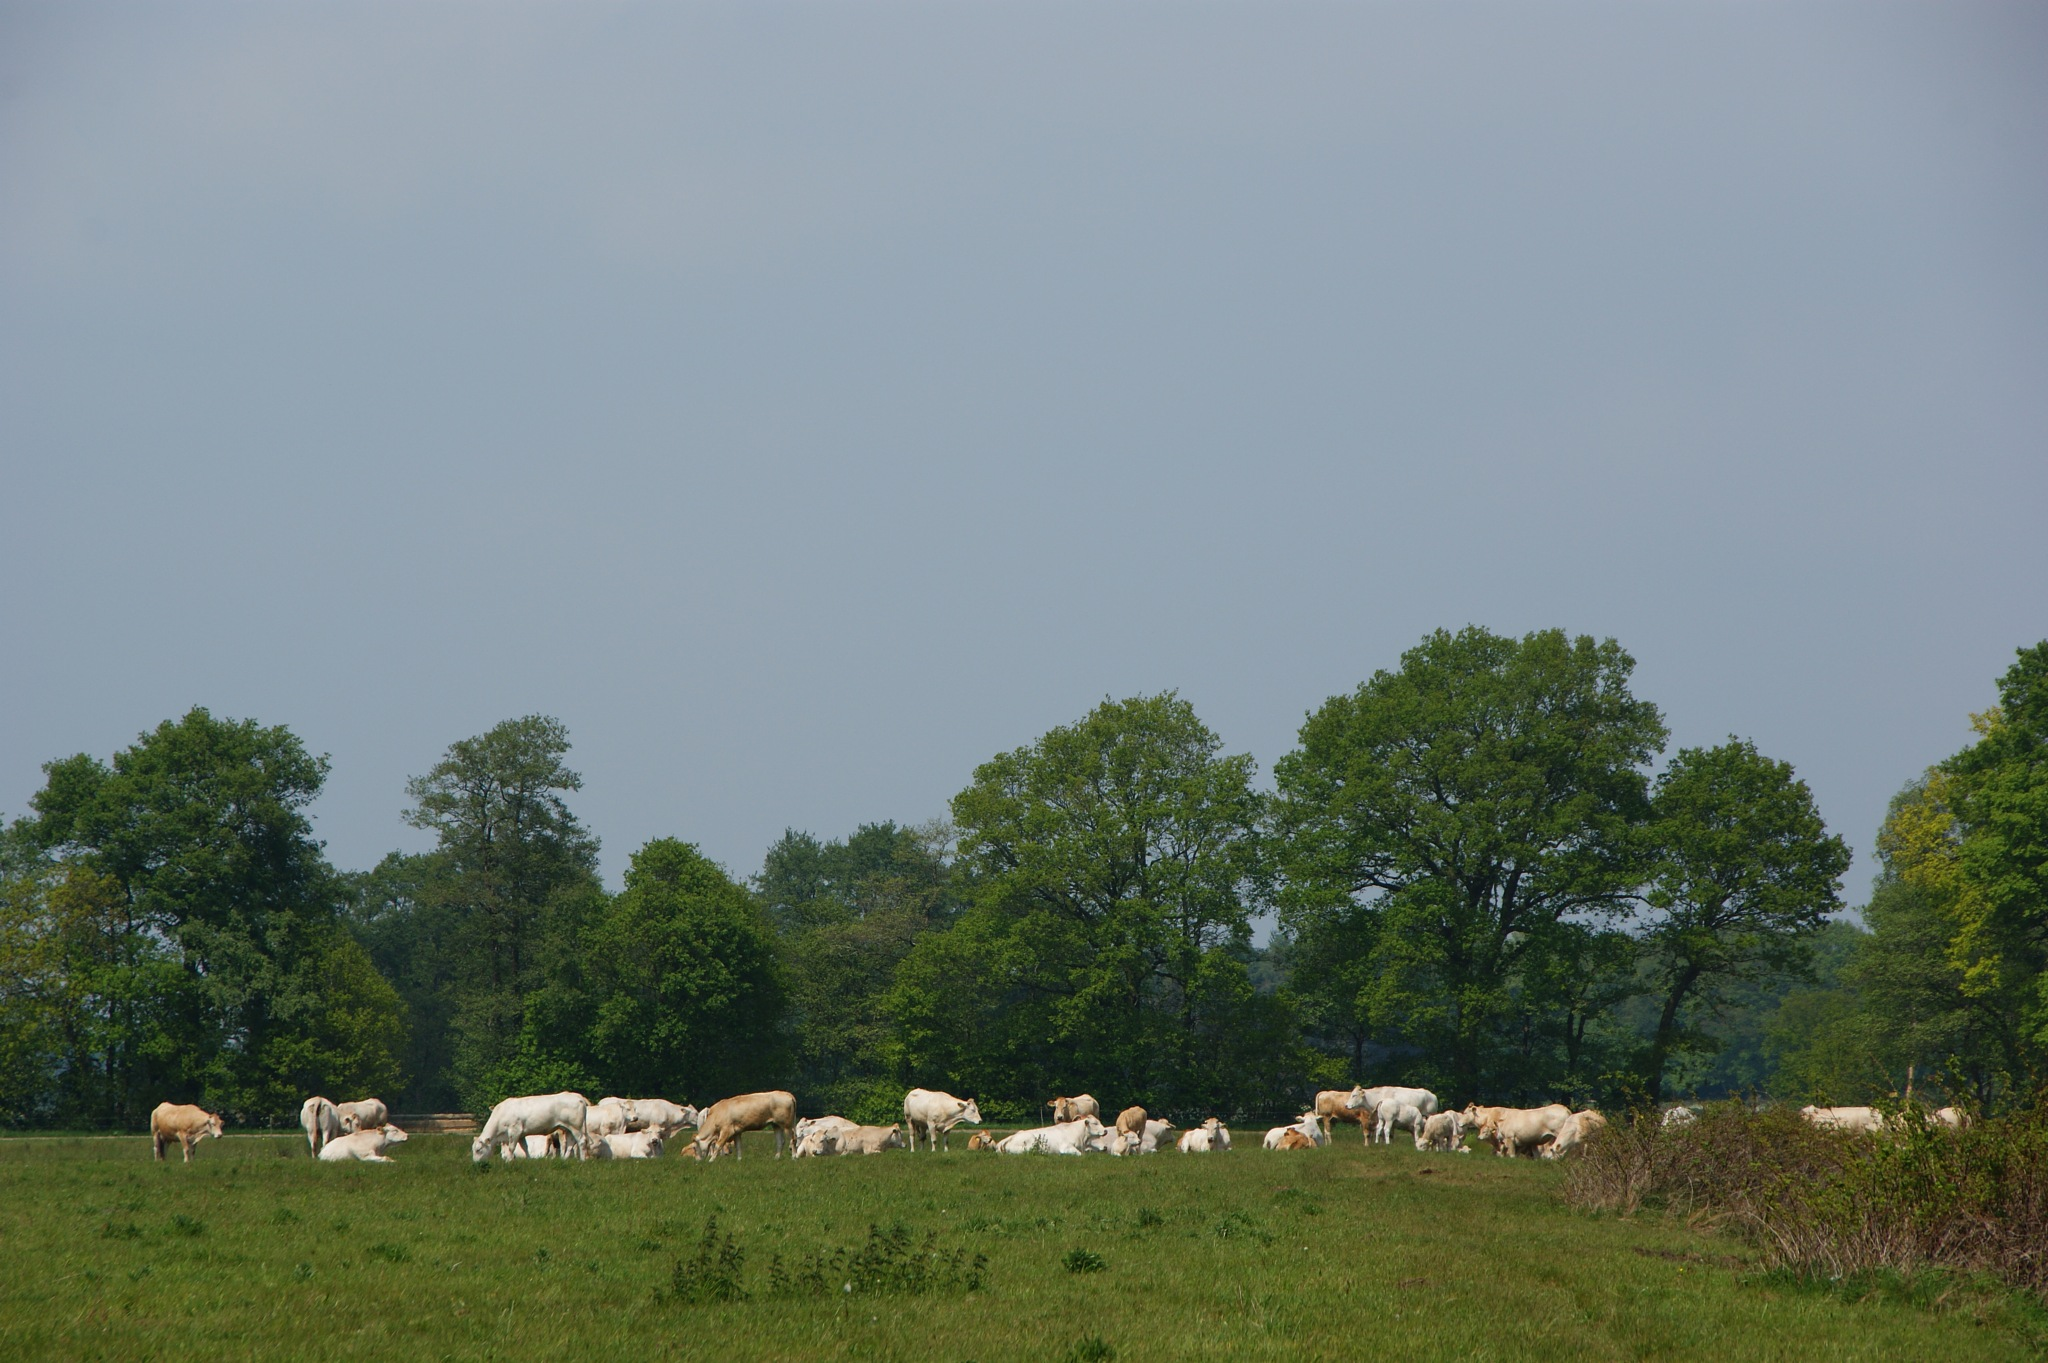 Cows by Schuring